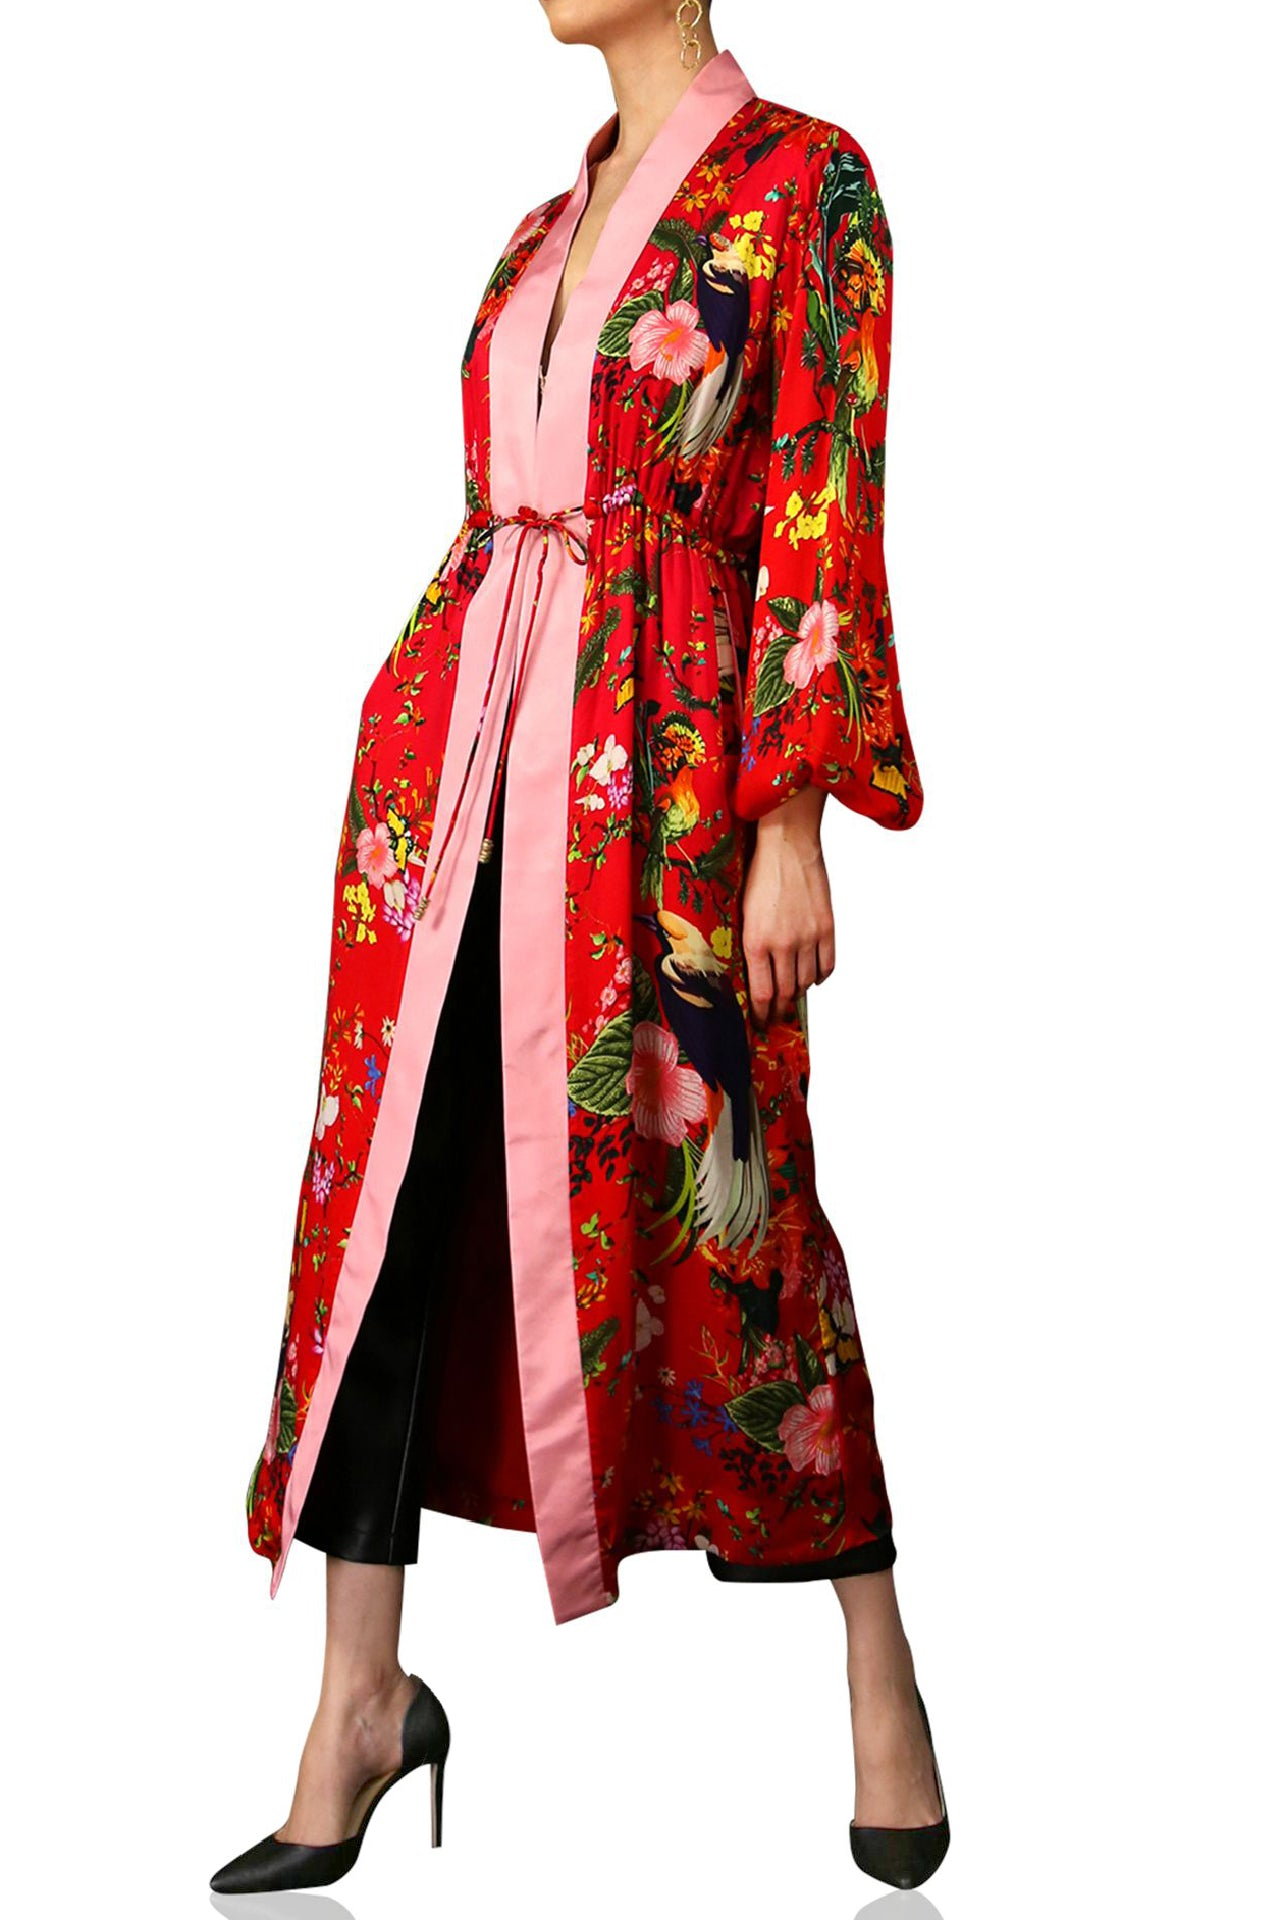 Kyle-Richards-Women-Designer-Long-Robe